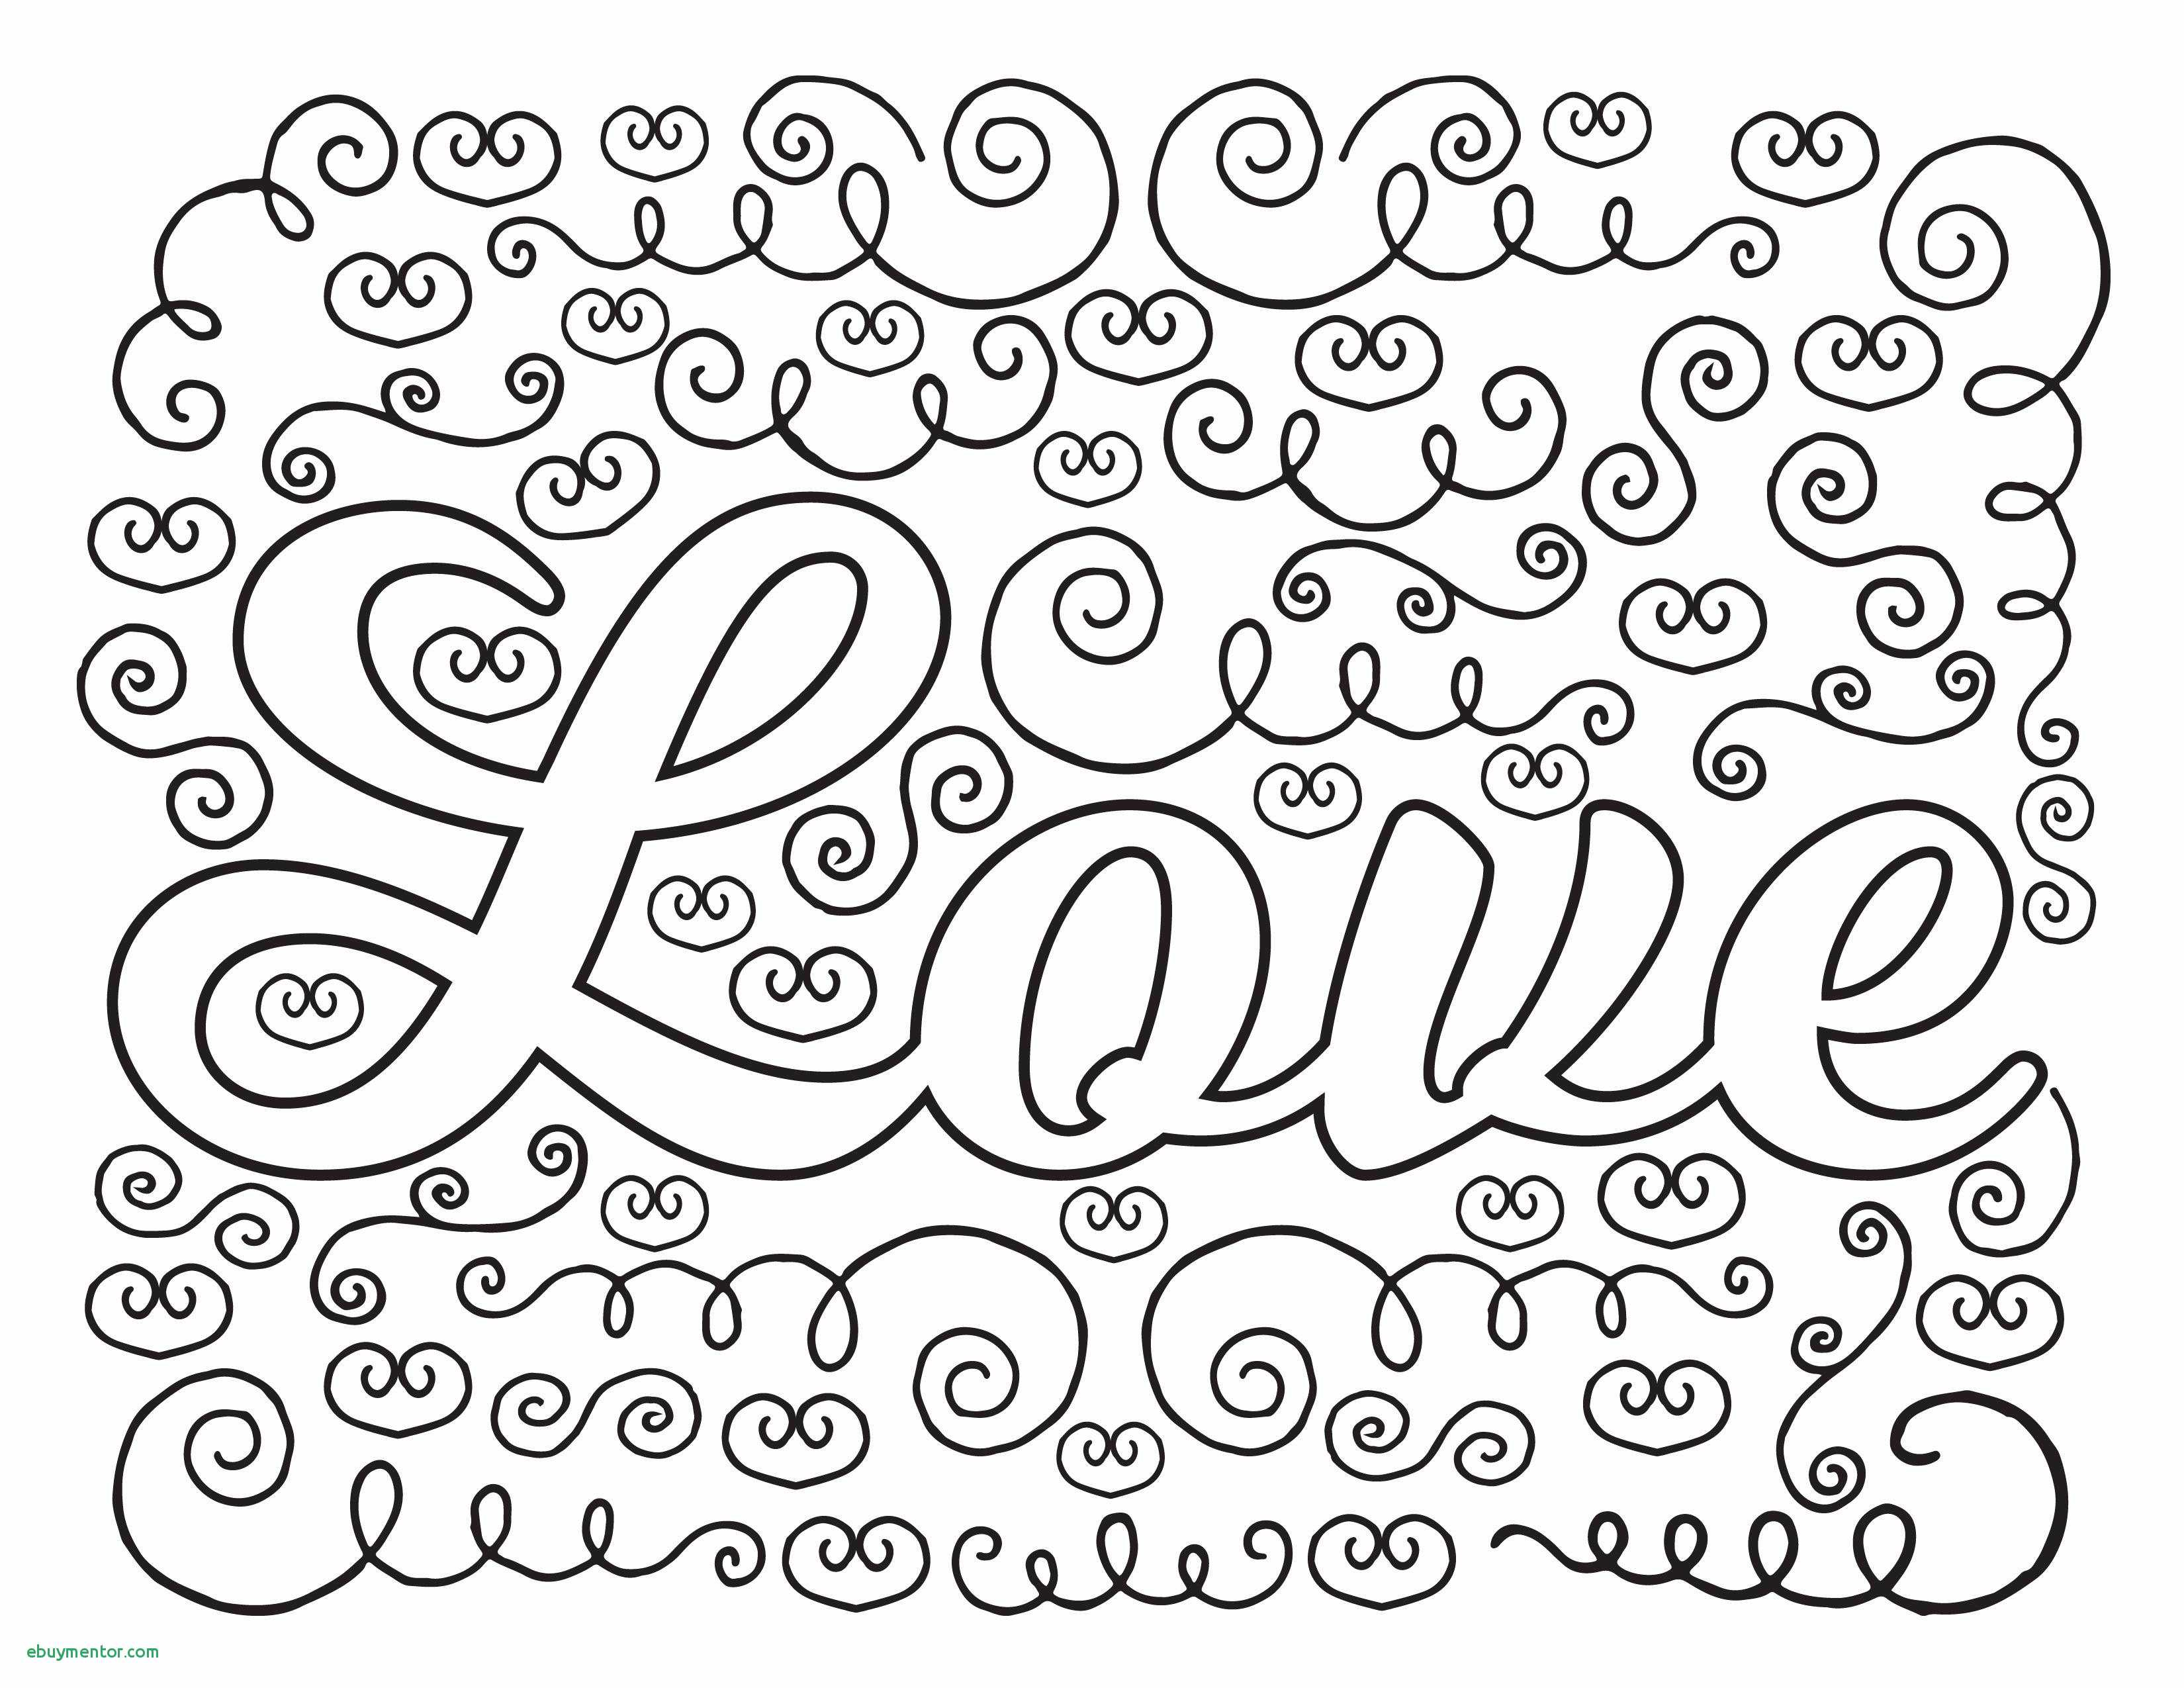 Color by number clipart image transparent download Coloring Pages : Color By Number Coloring Pages For Kids With Free ... image transparent download